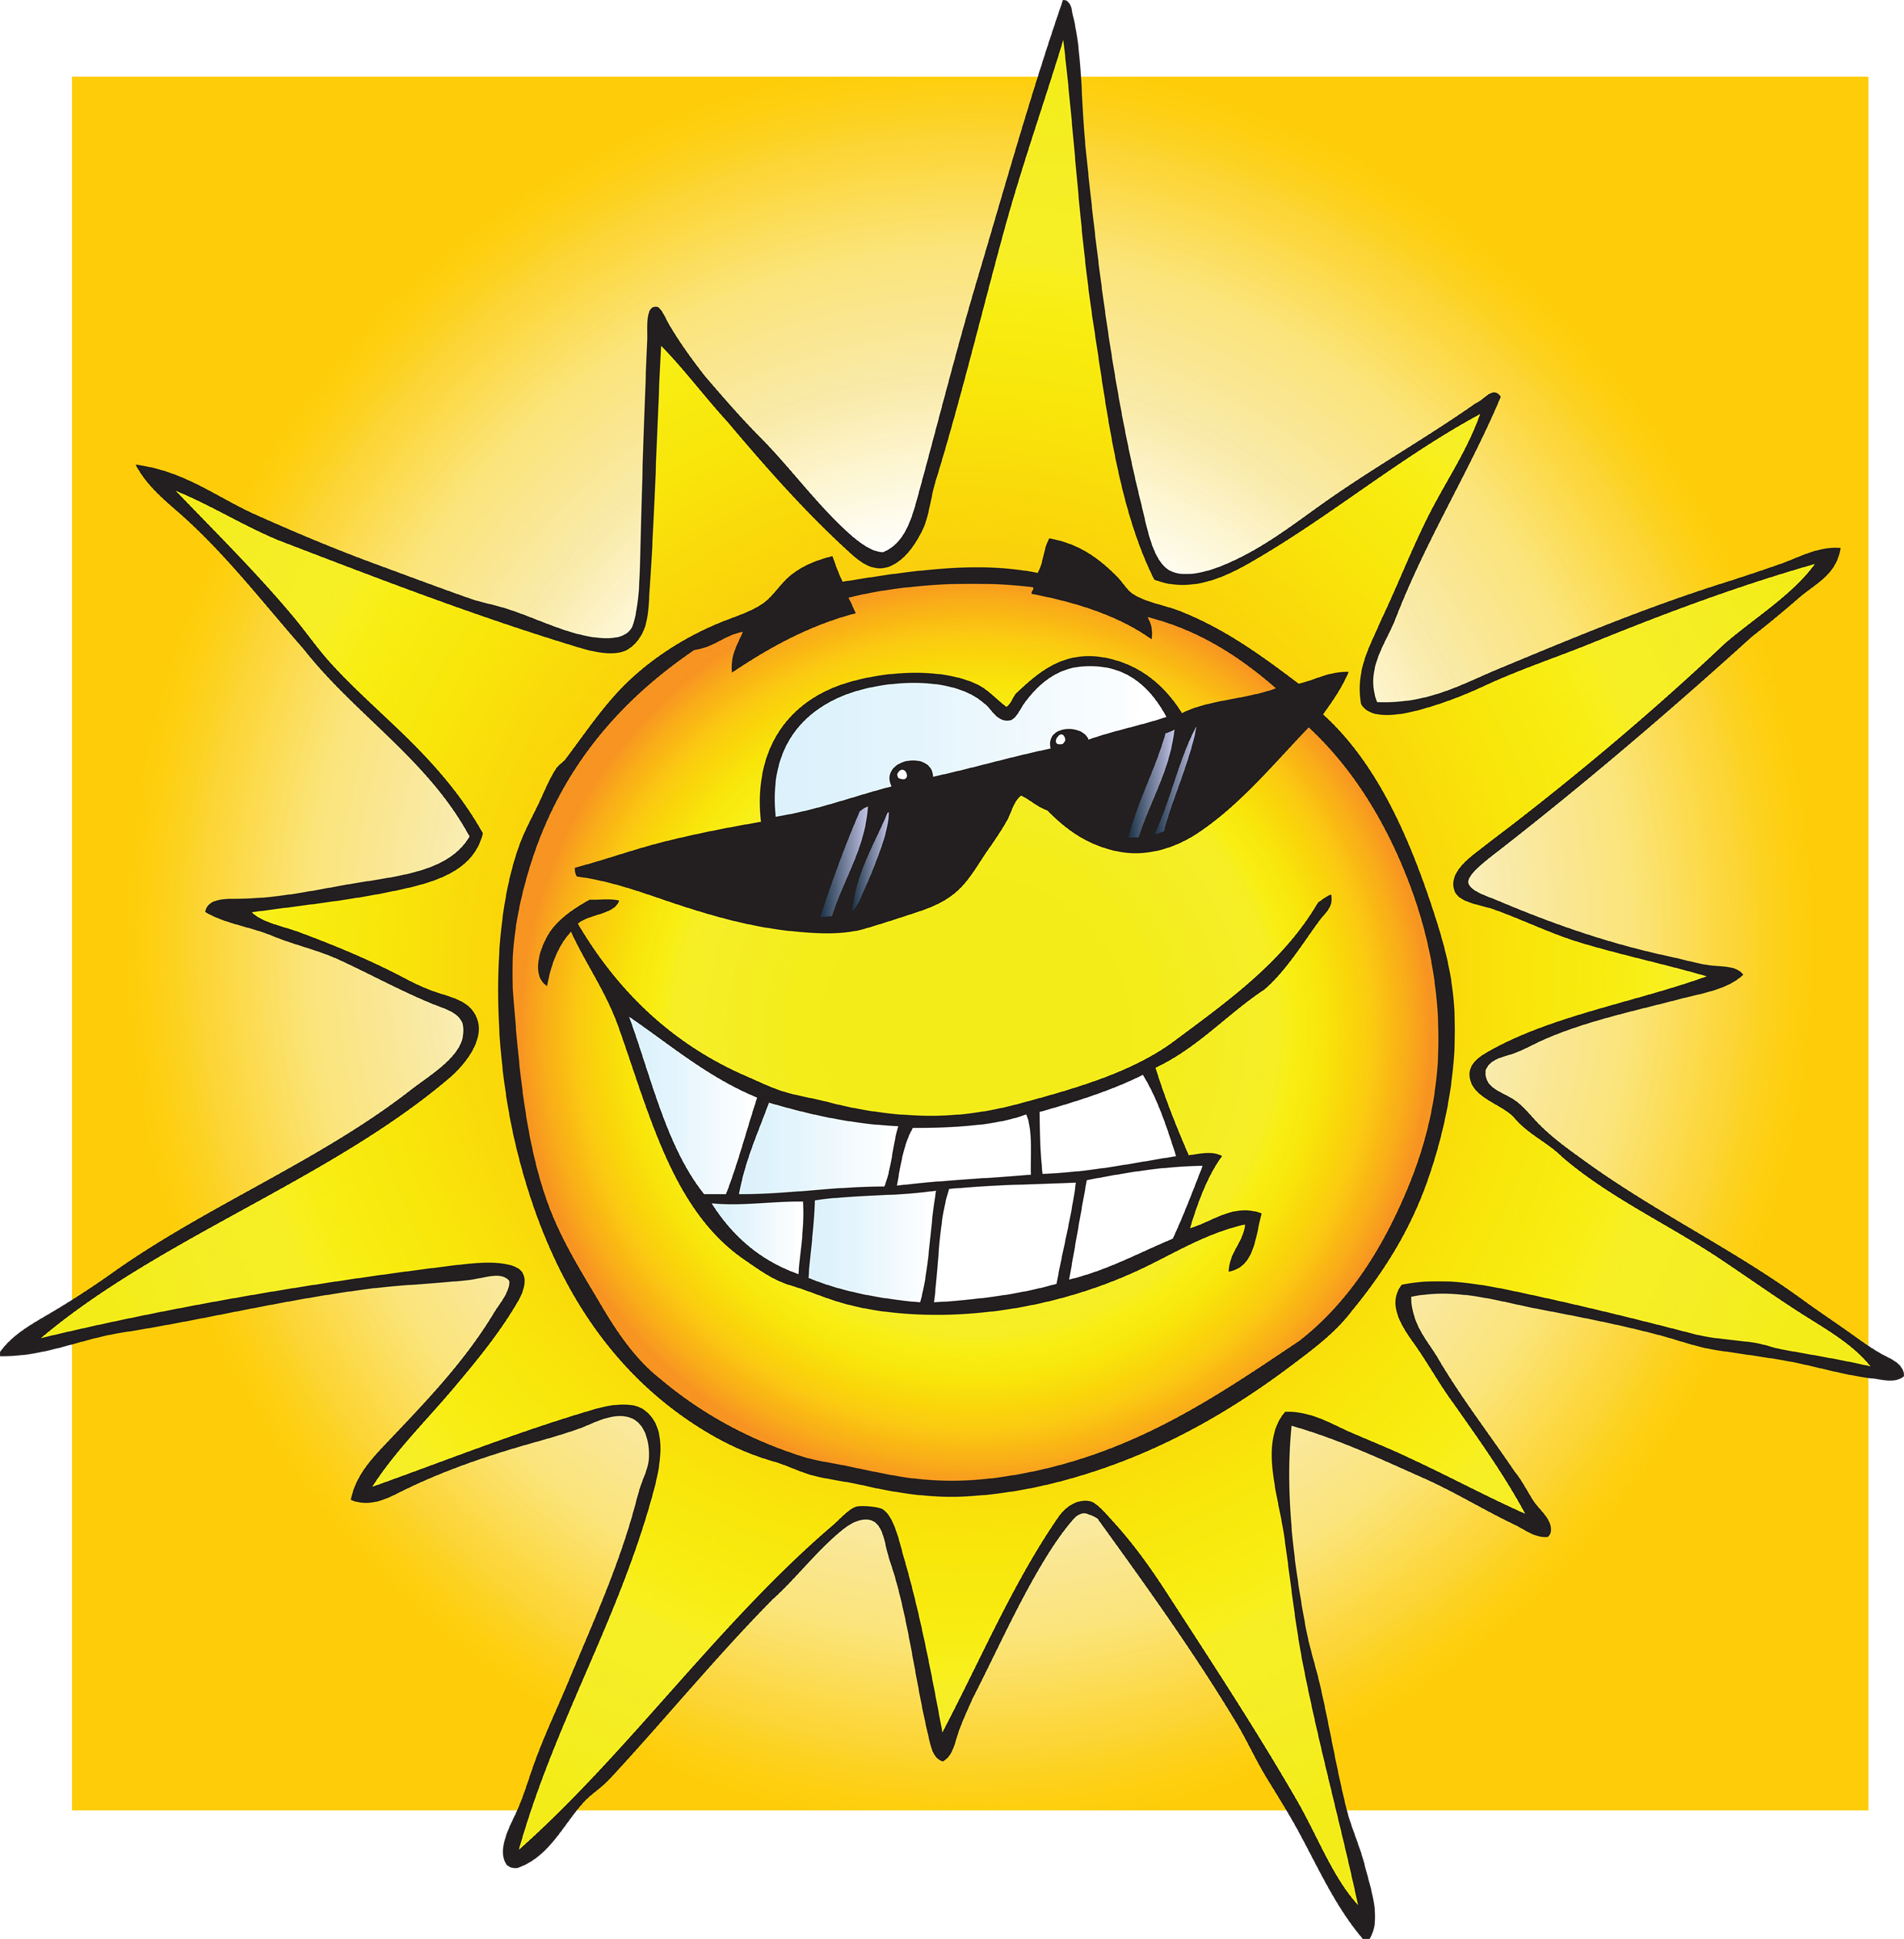 Too Hot Cartoons and Comics - funny pictures from CartoonStock |Too Hot Weather Cartoon